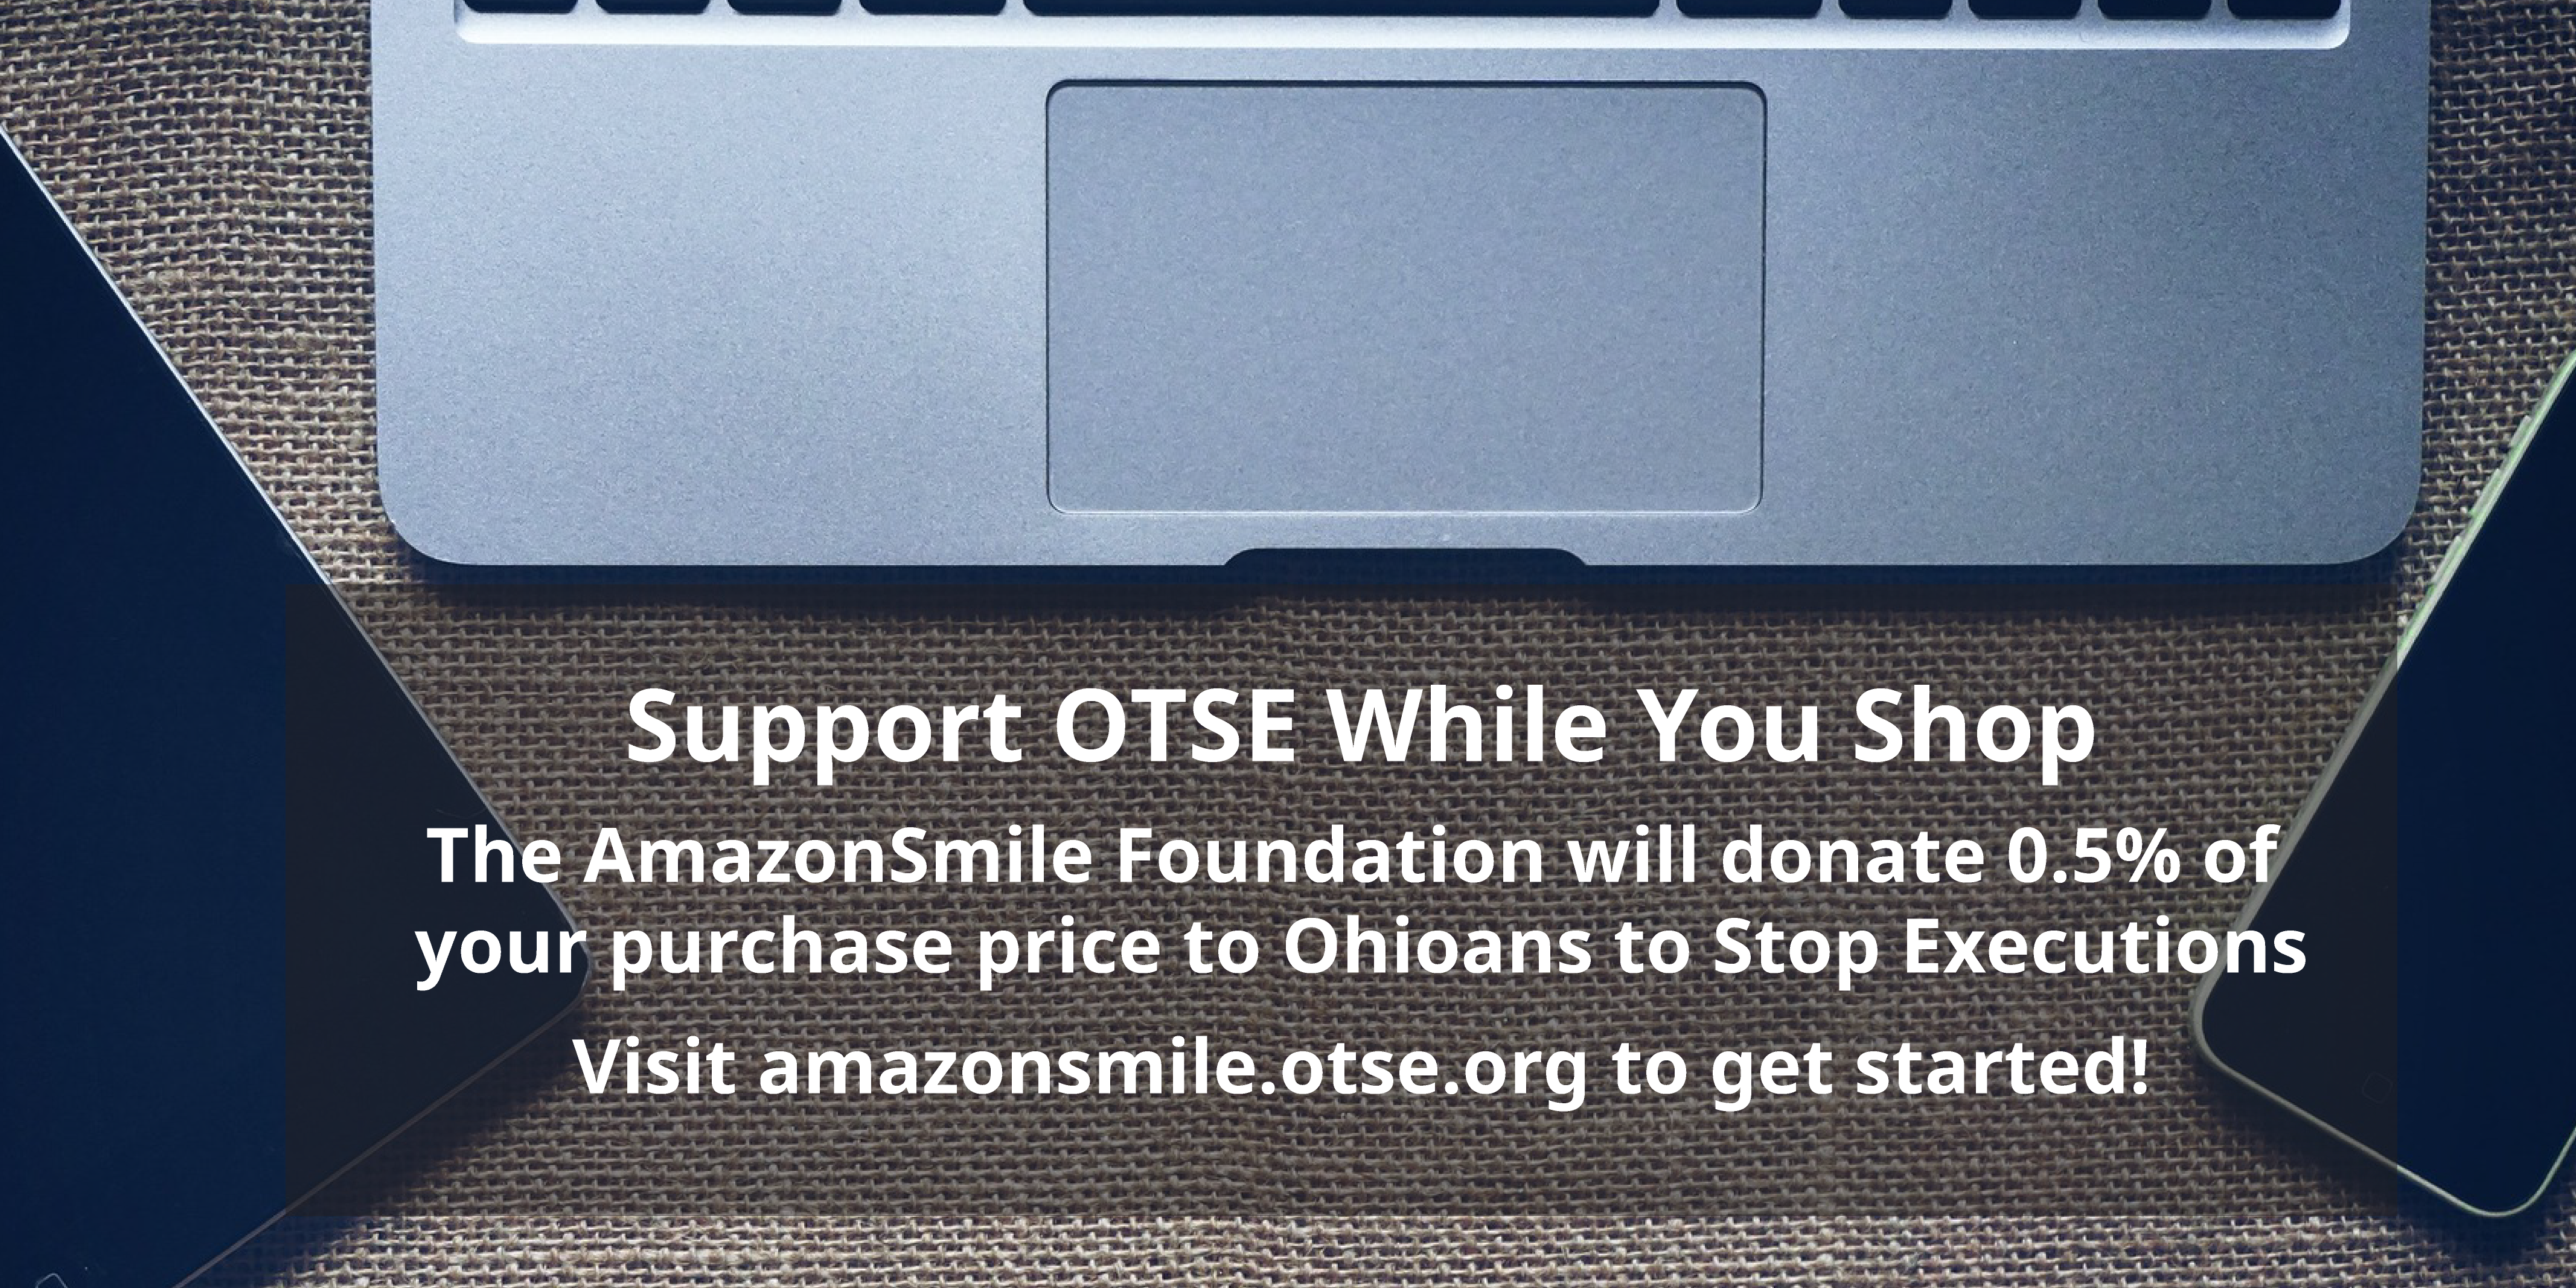 Support OTSE While You Shop!